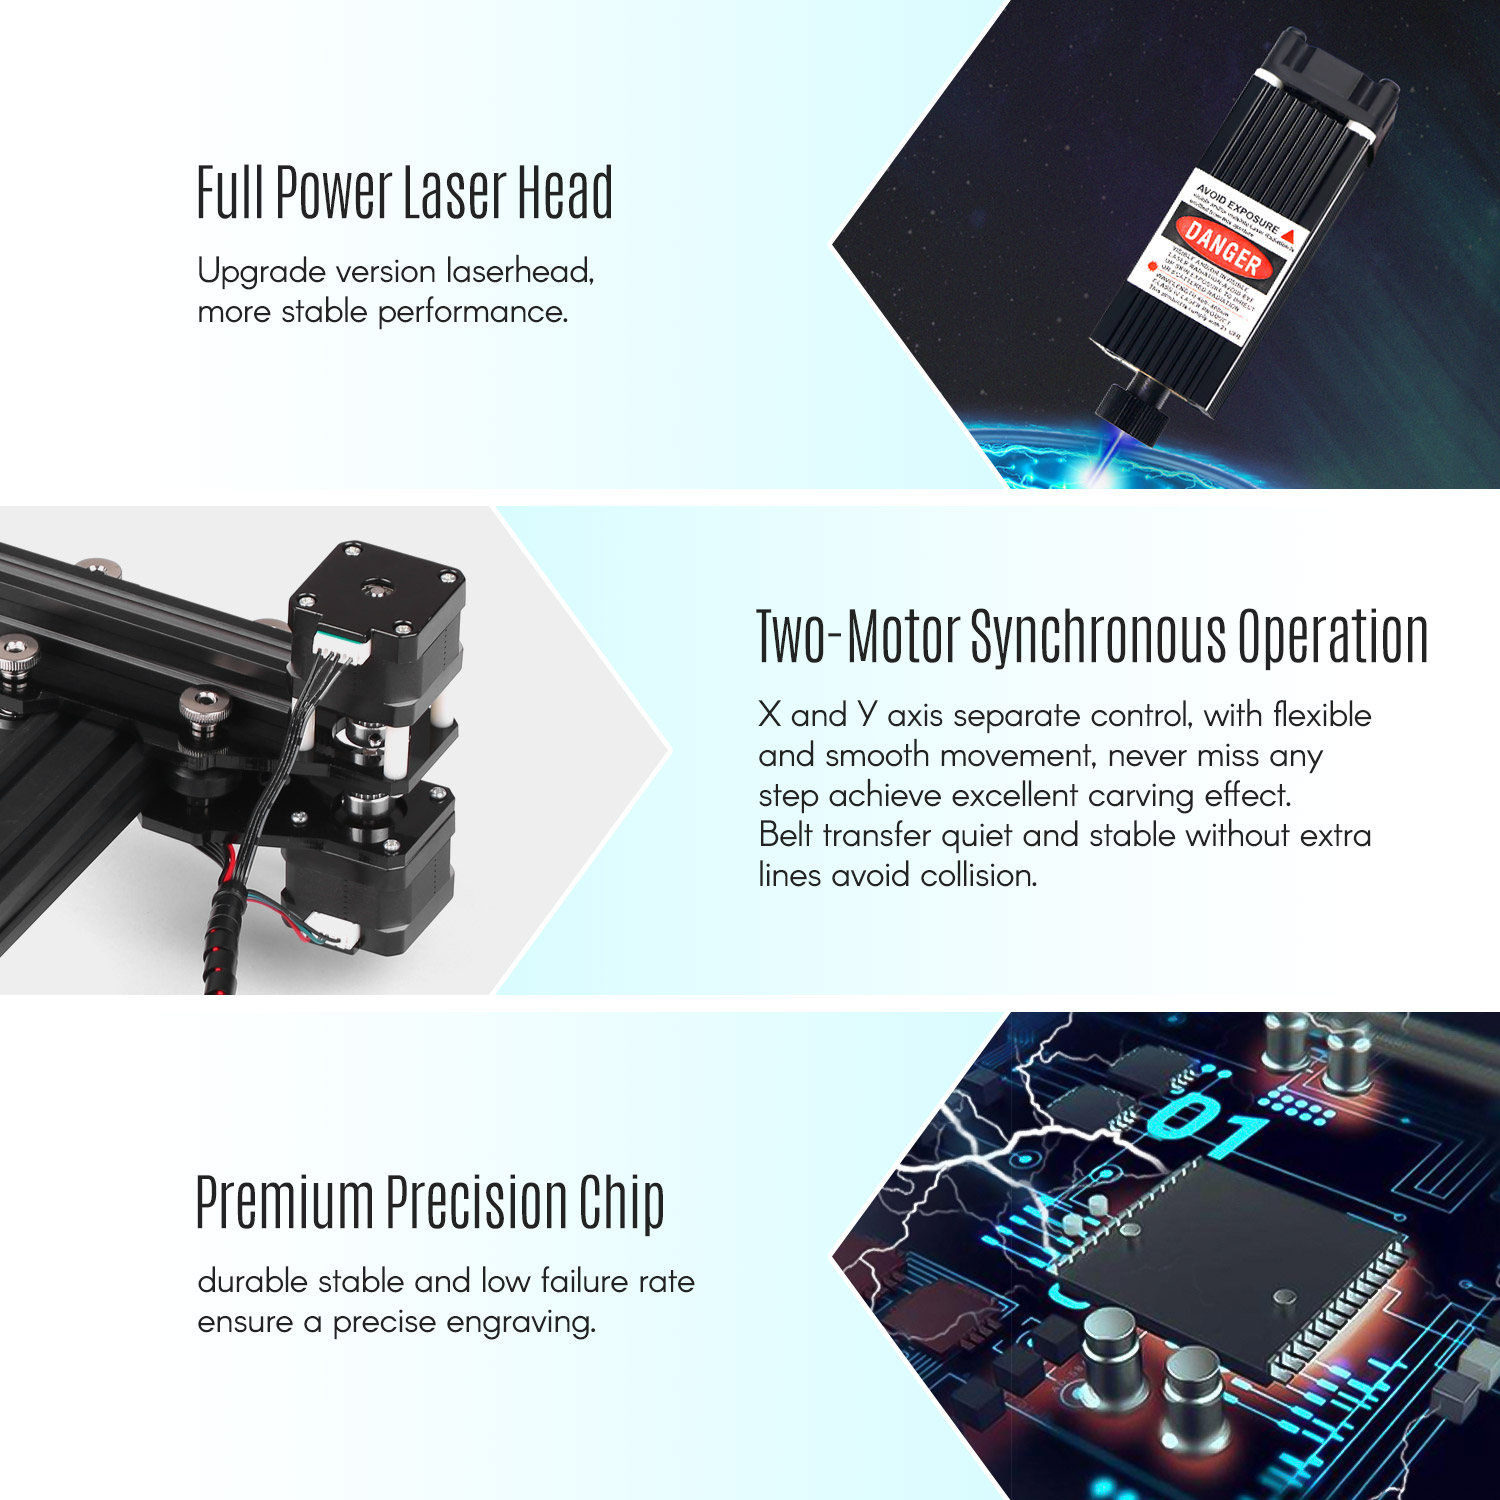 20W/7000mW Upgrated Version Laser Engraver Machine DIY USB CNC Router Cutting Carver Off-line Location Laser Engraving Printer